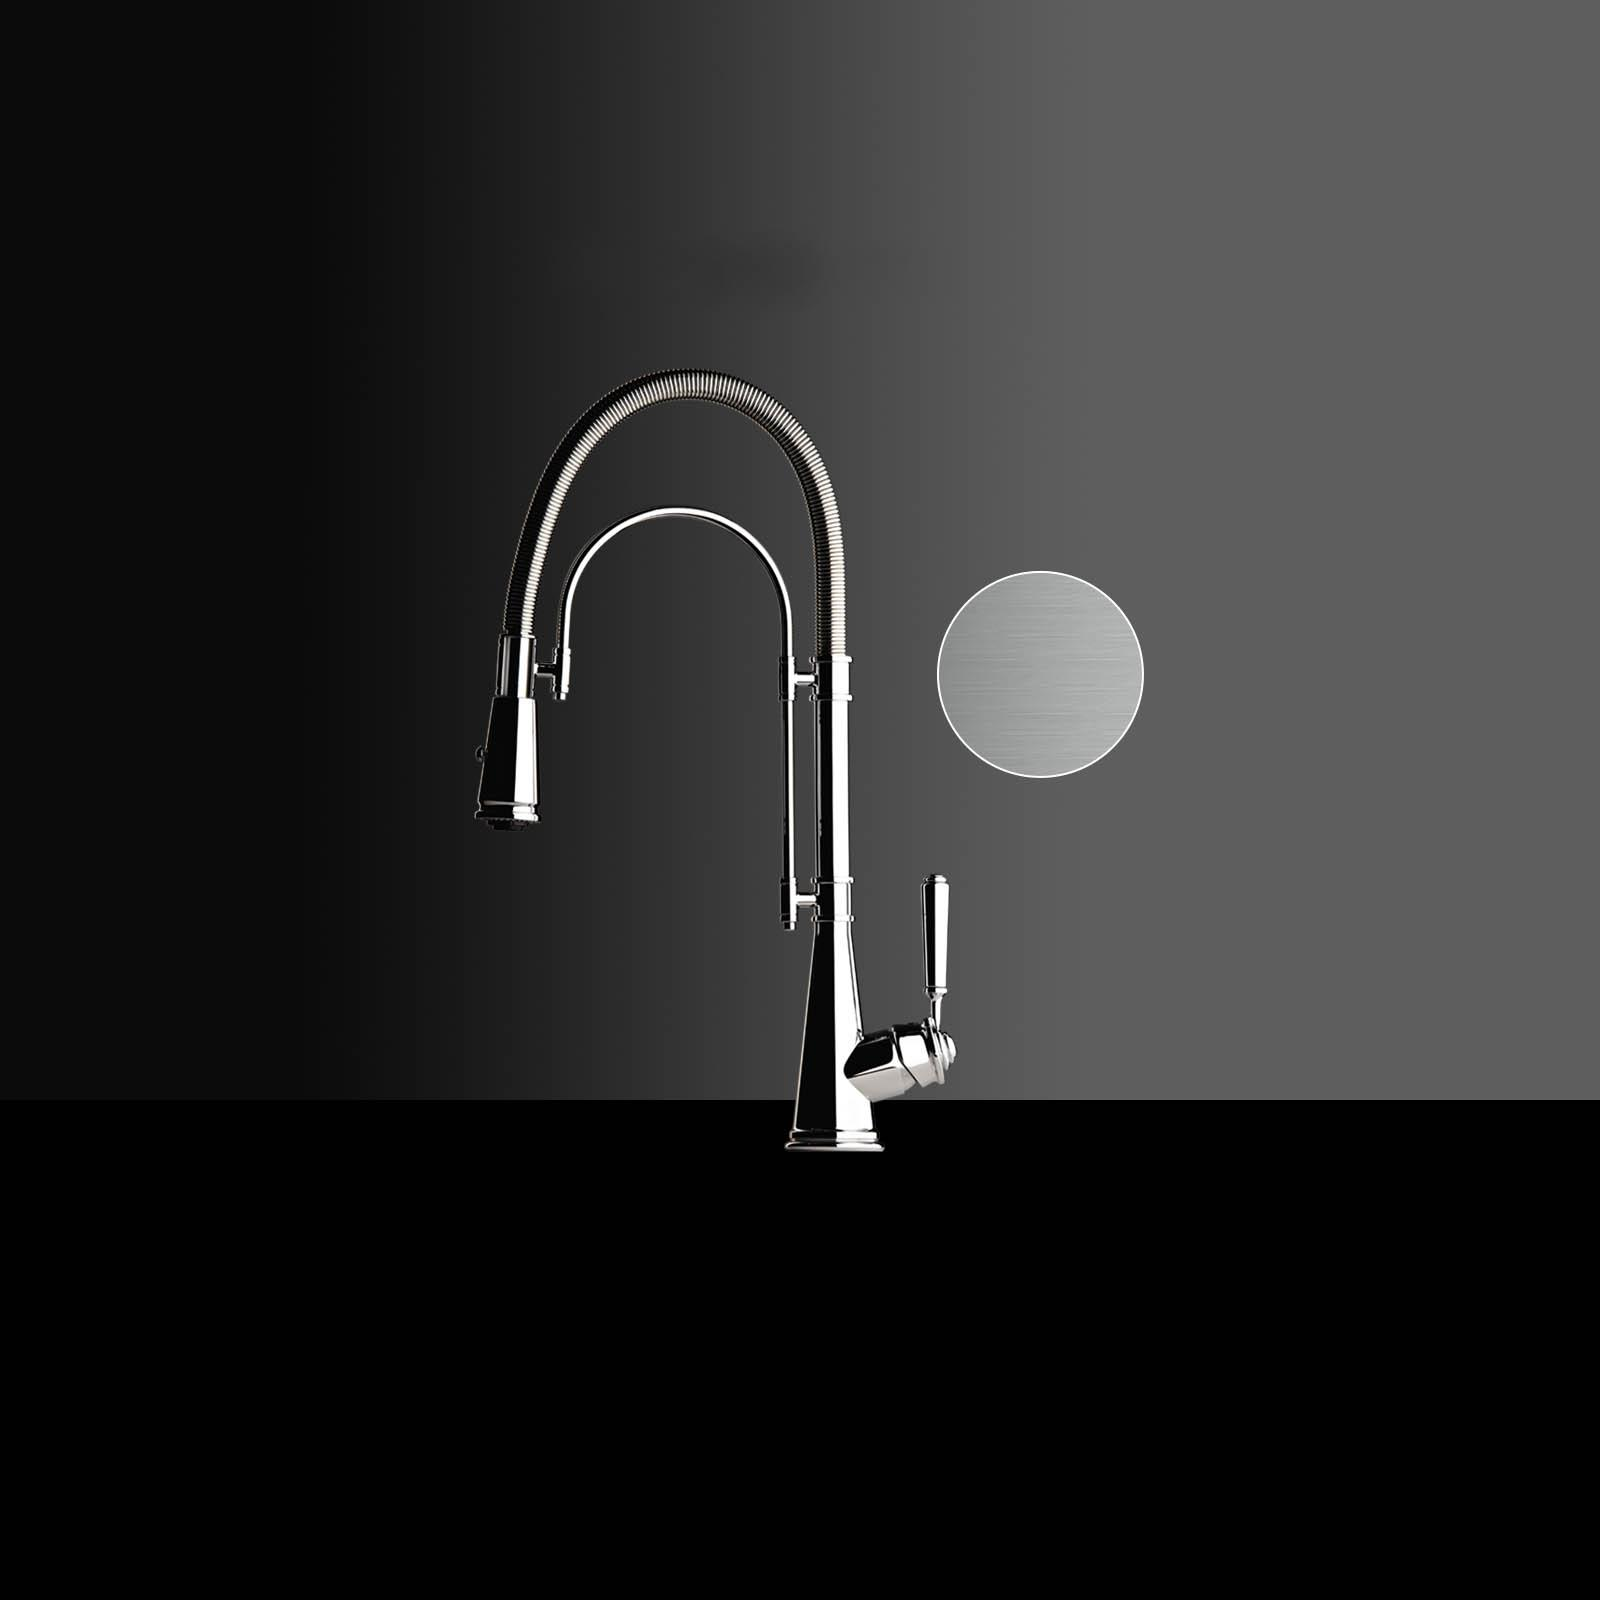 High-quality single lever tap Blaise - pull out spray - brushed nickel